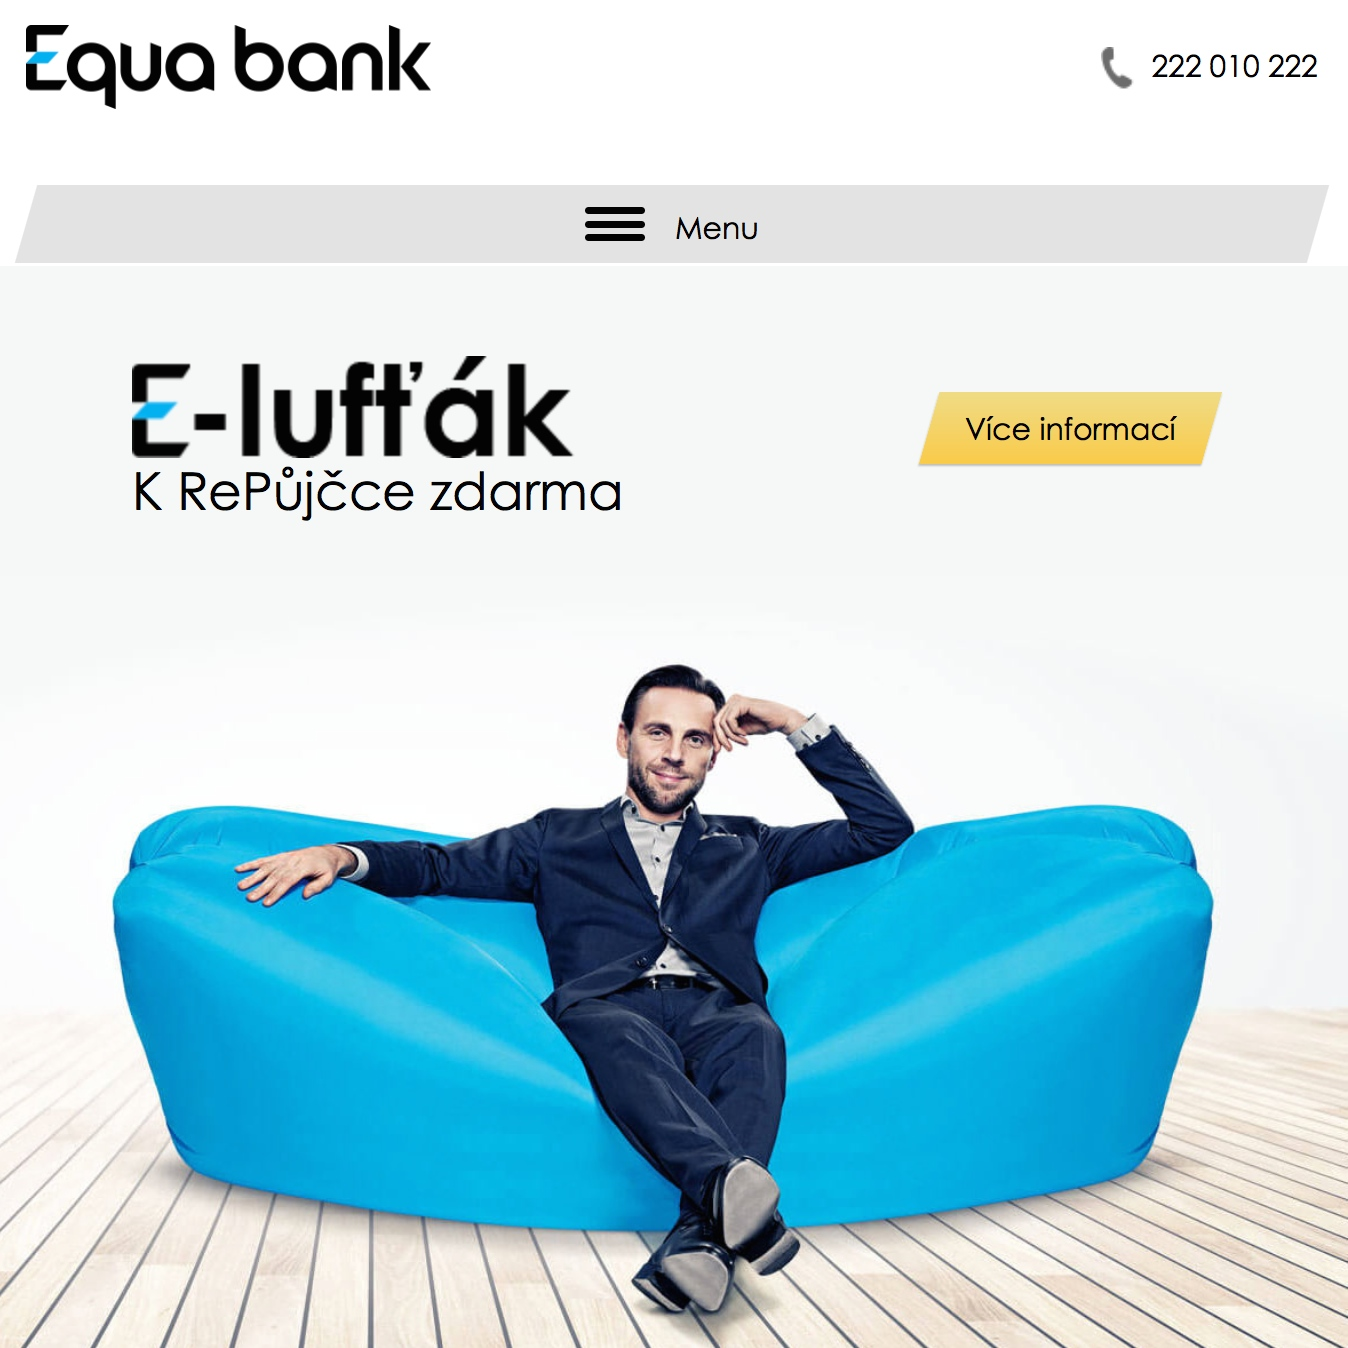 Equa bank | digital